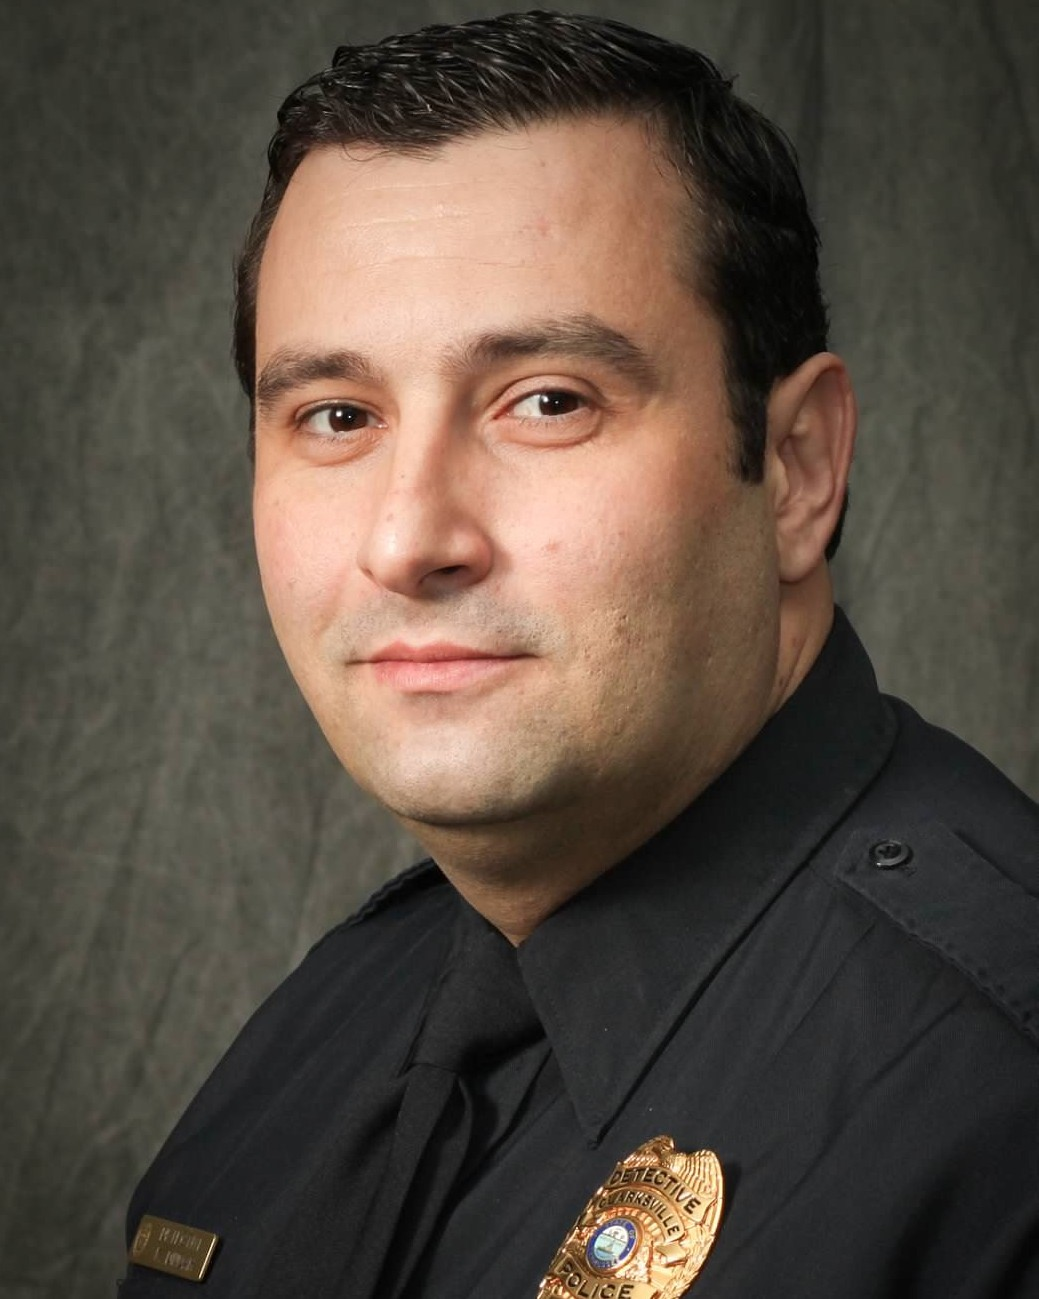 Detective Kagan Dindar | Clarksville Police Department, Tennessee